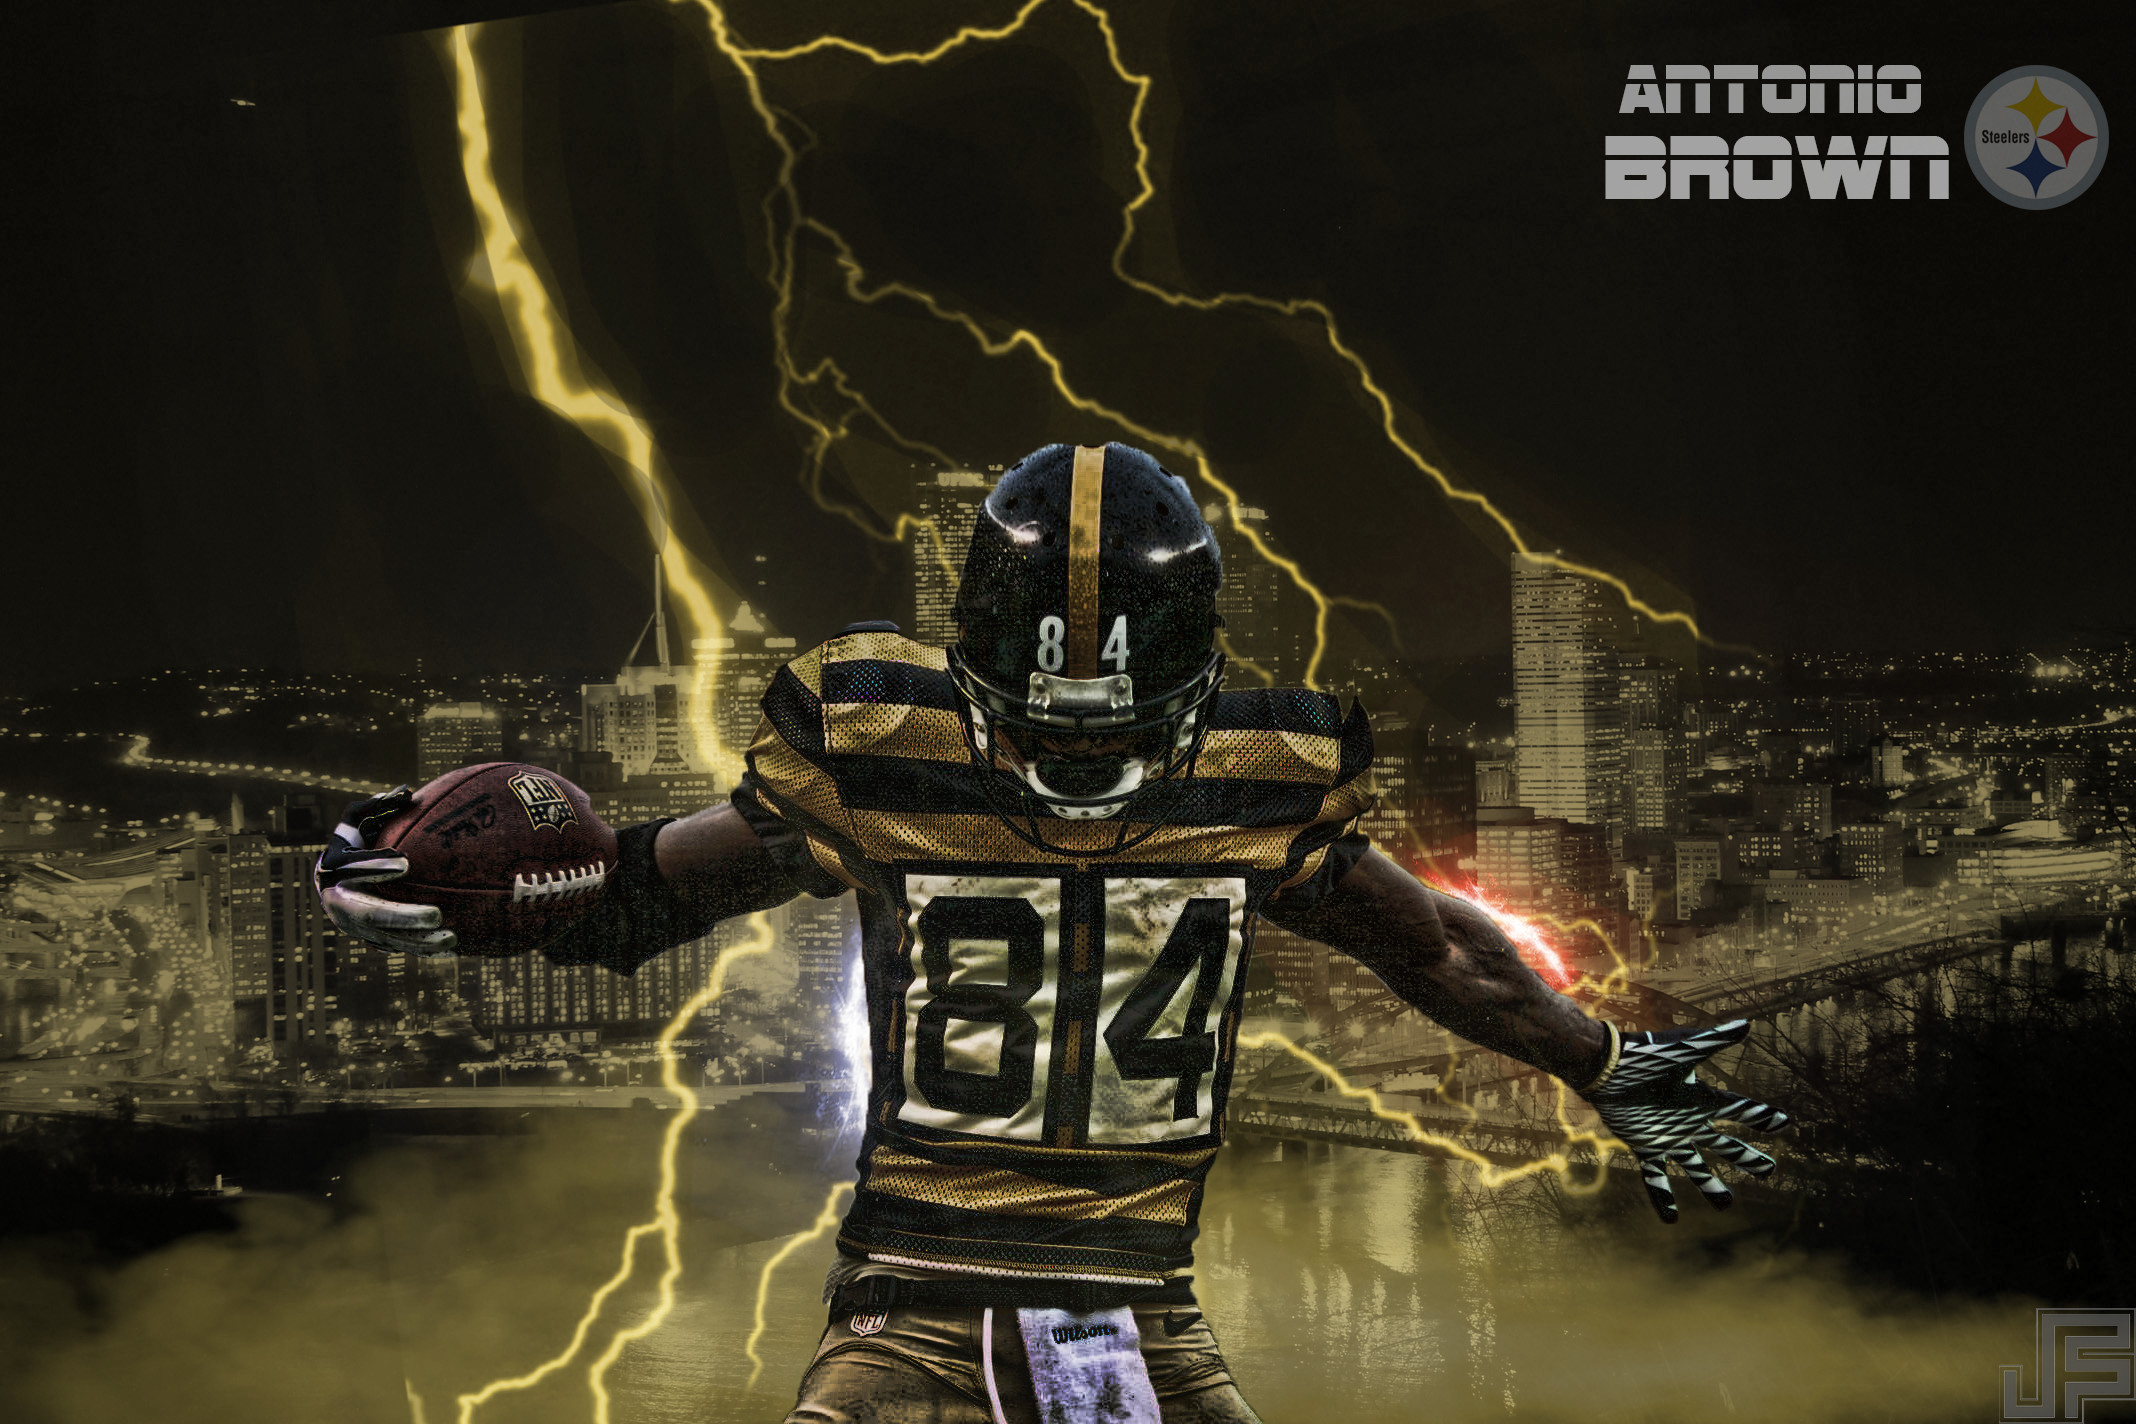 Pittsburgh Steelers Antonio Brown High Resolution Wallpapers (Catrice  Walsh, 2136×1424)